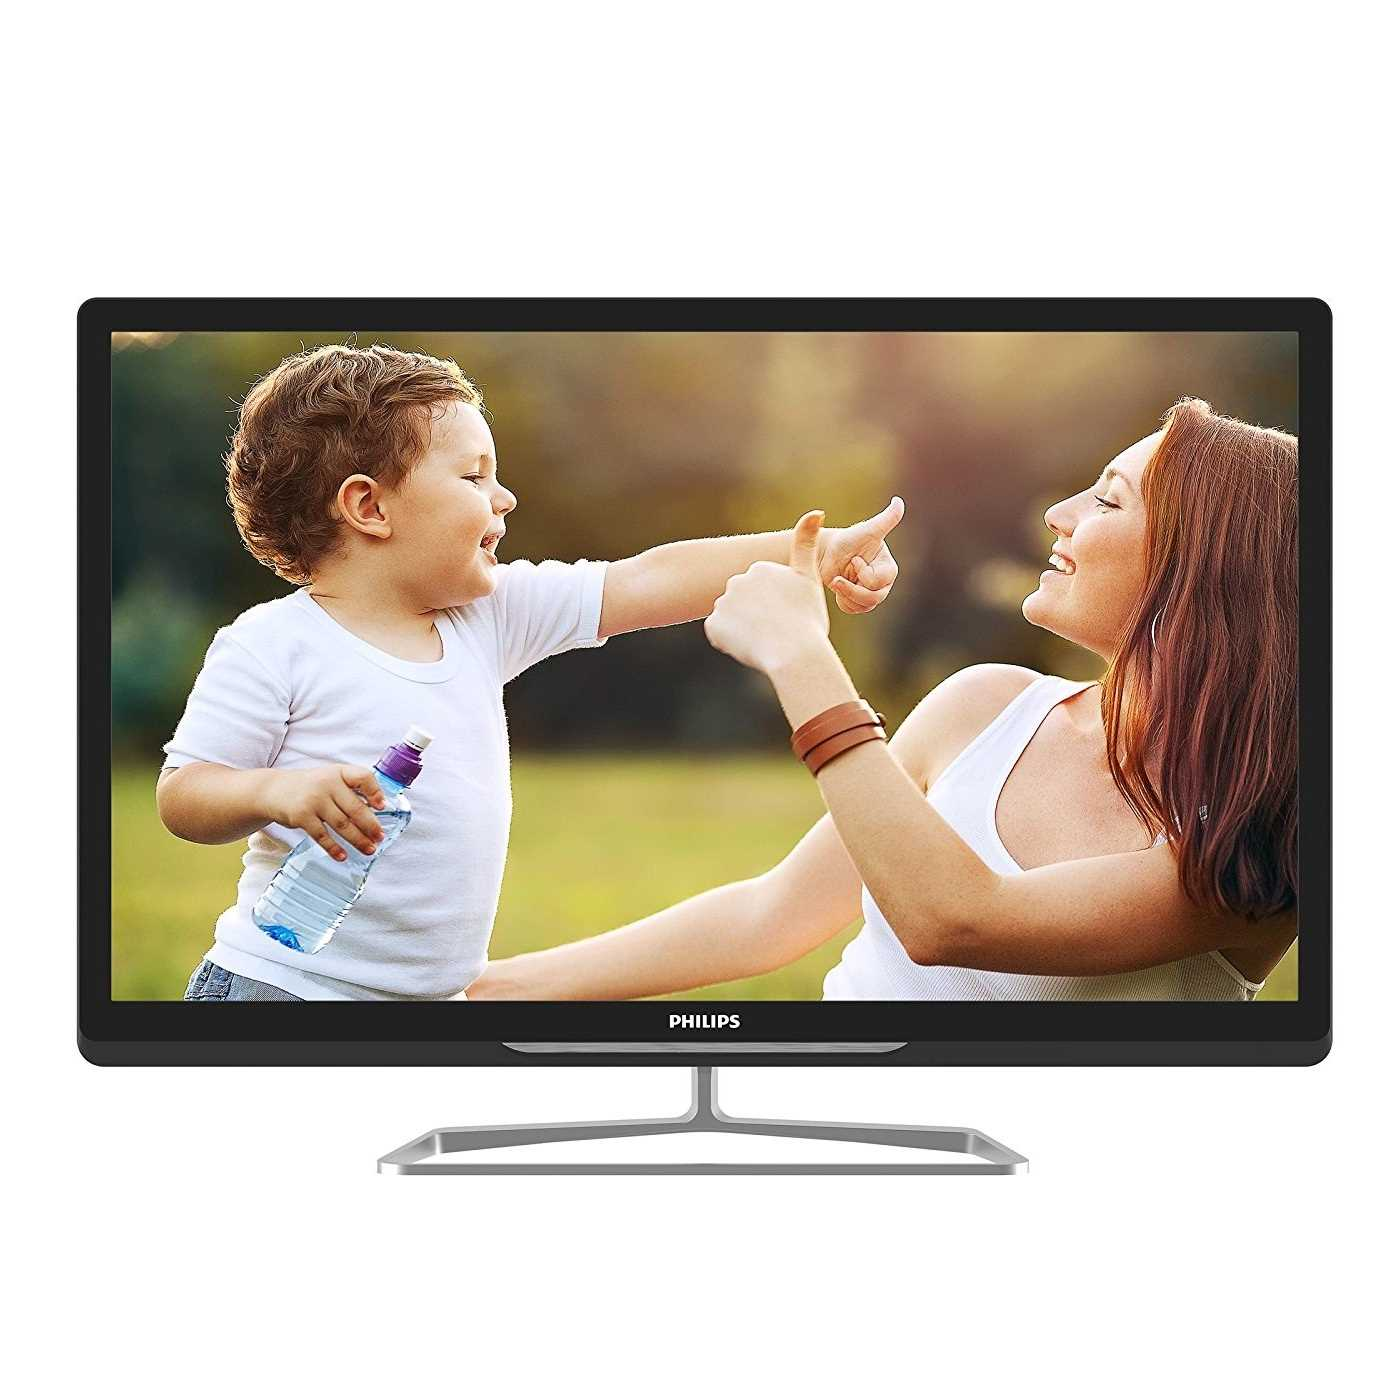 Philips 39PFL3931 V7 39 Inch HD LED Television